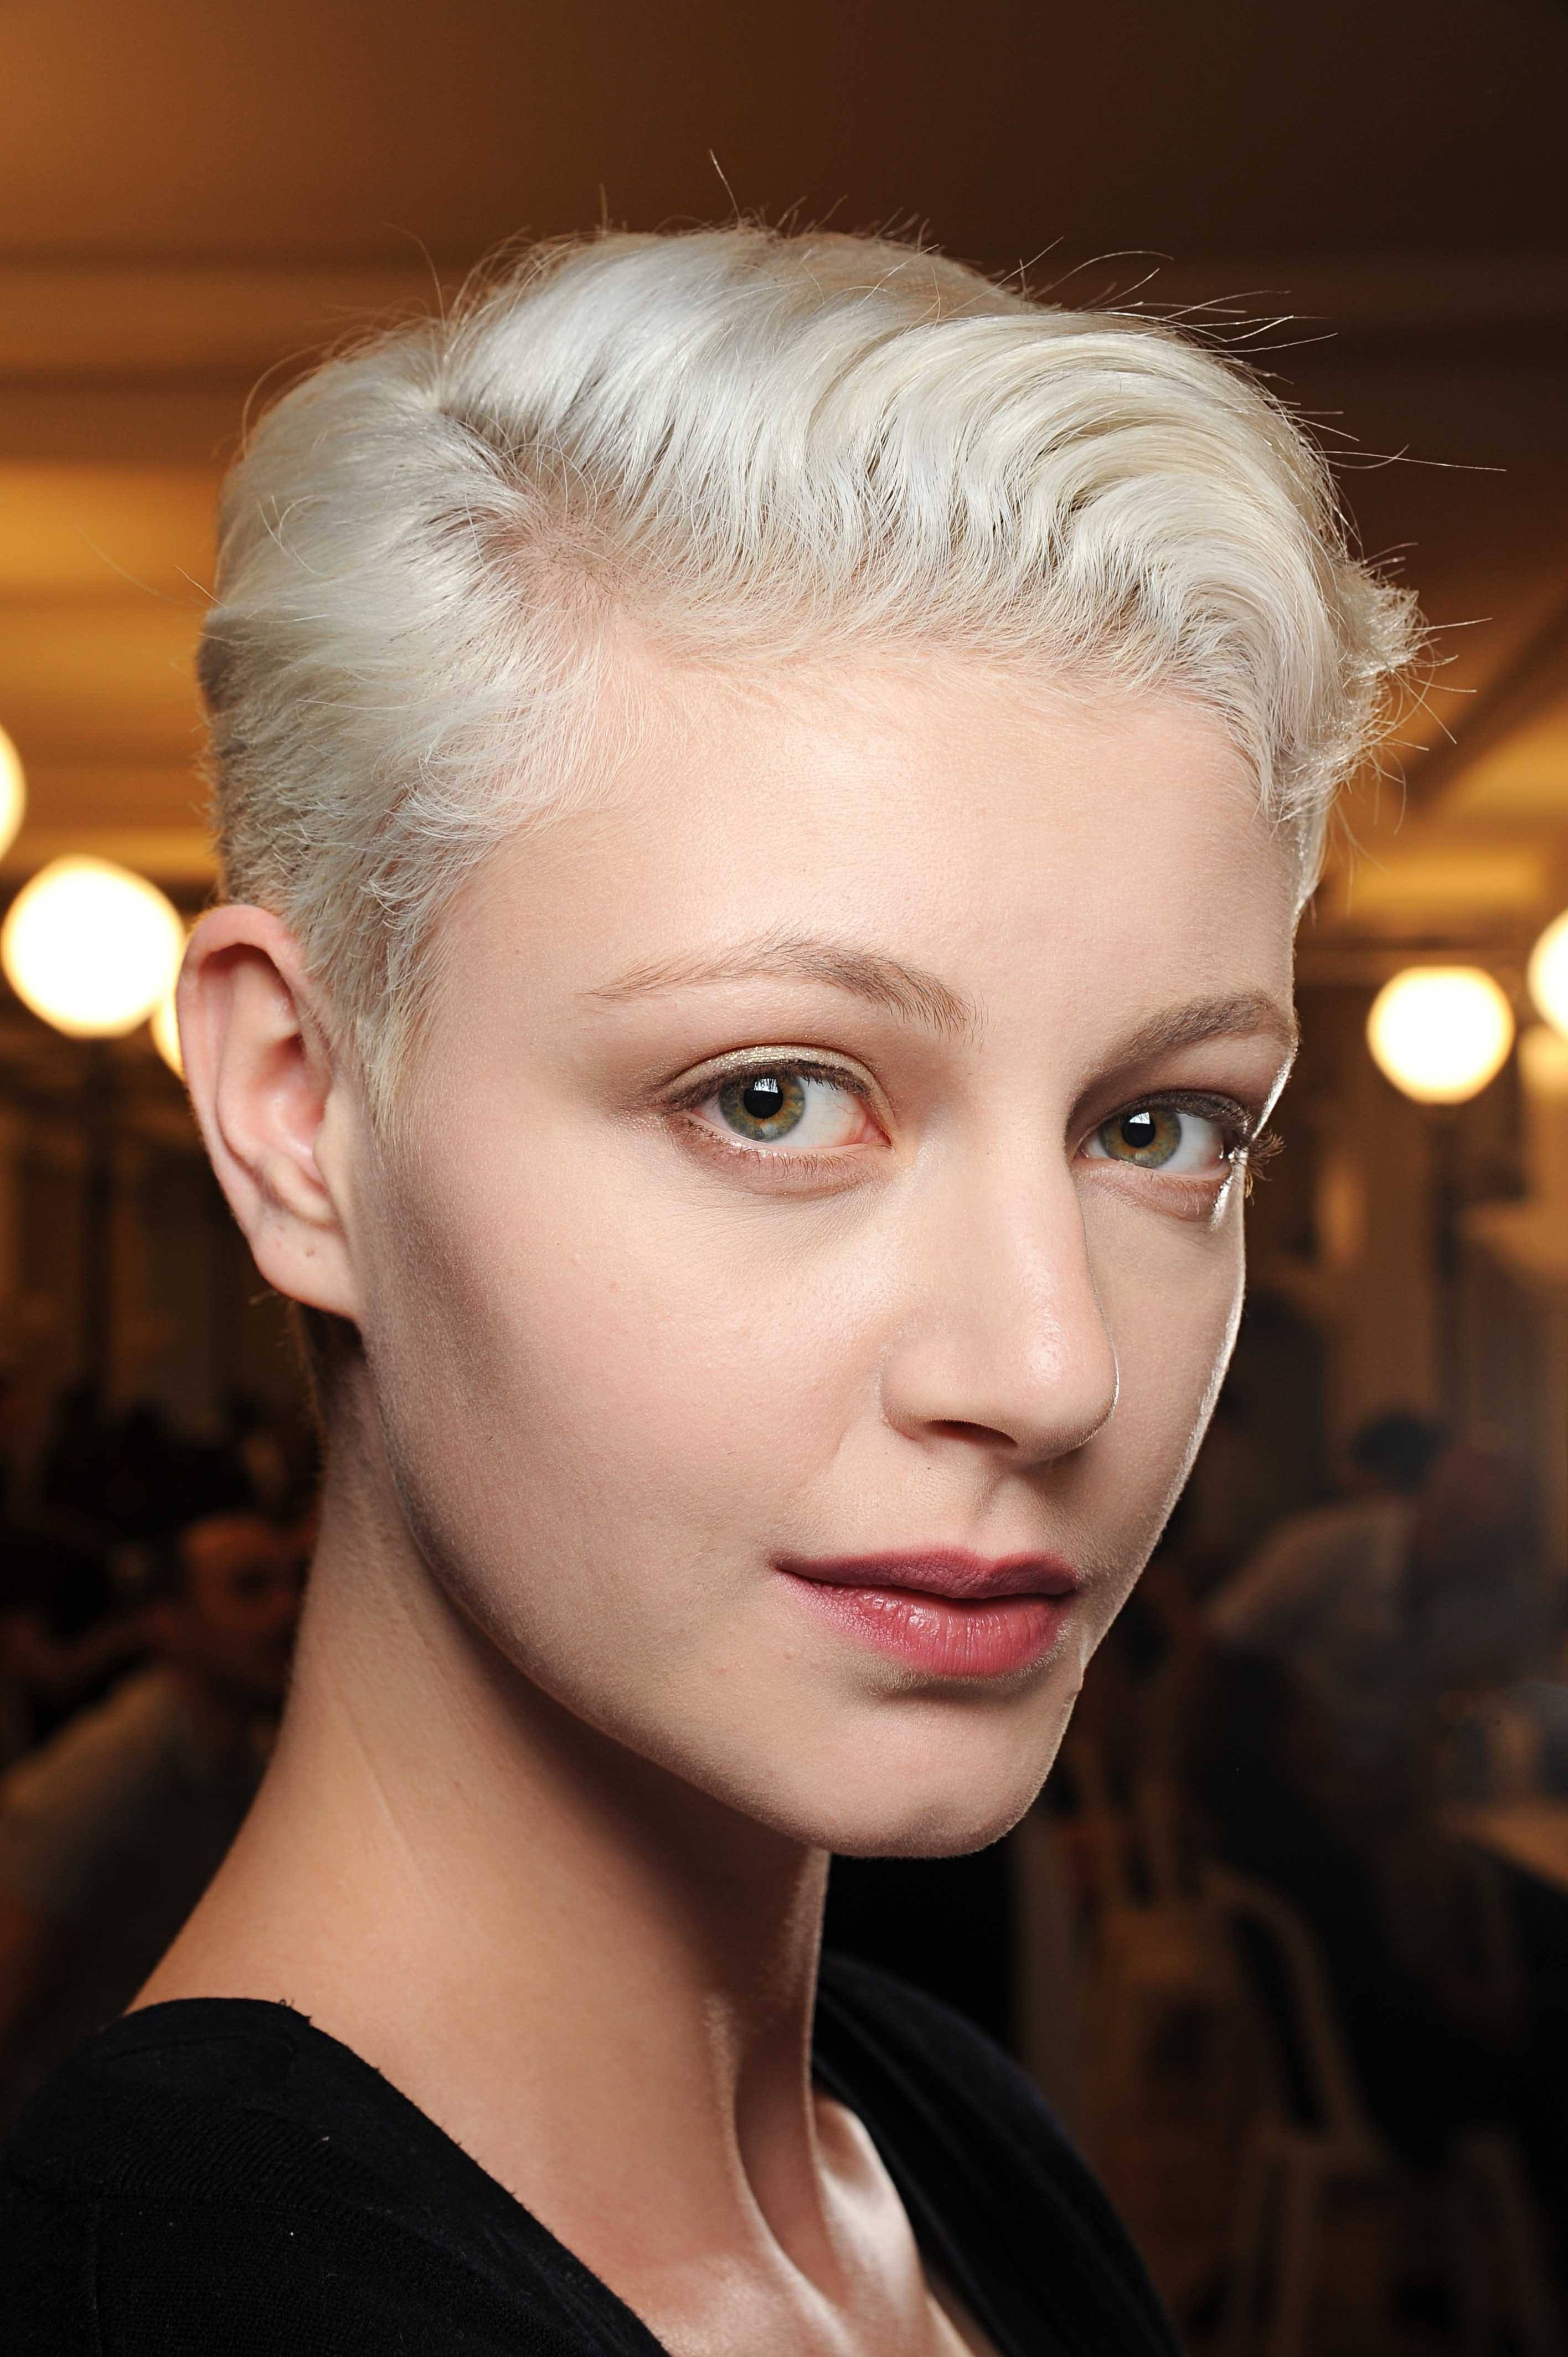 White Bleach Blonde Hair Short Pixie Armani Prive Aw Indigital Pertaining To Favorite Bleach Blonde Pixie Hairstyles (View 16 of 20)